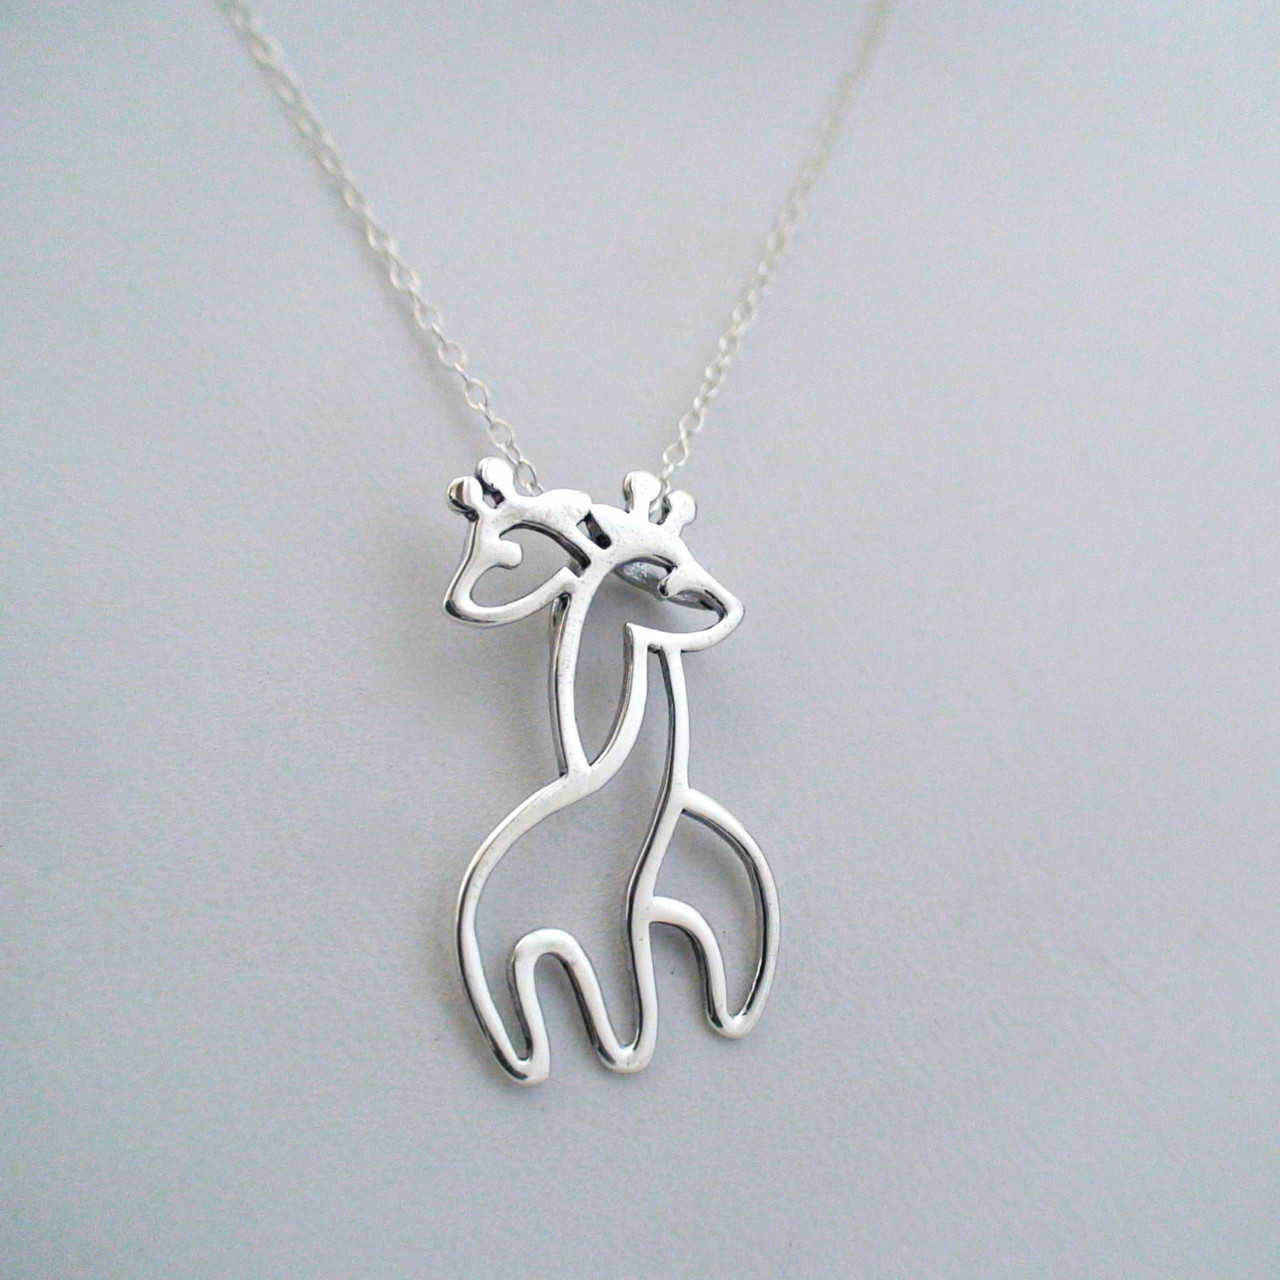 crystal color com sweater black deer pendant senfai dp three amazon enamel pretty gold giraffe necklace jewelry